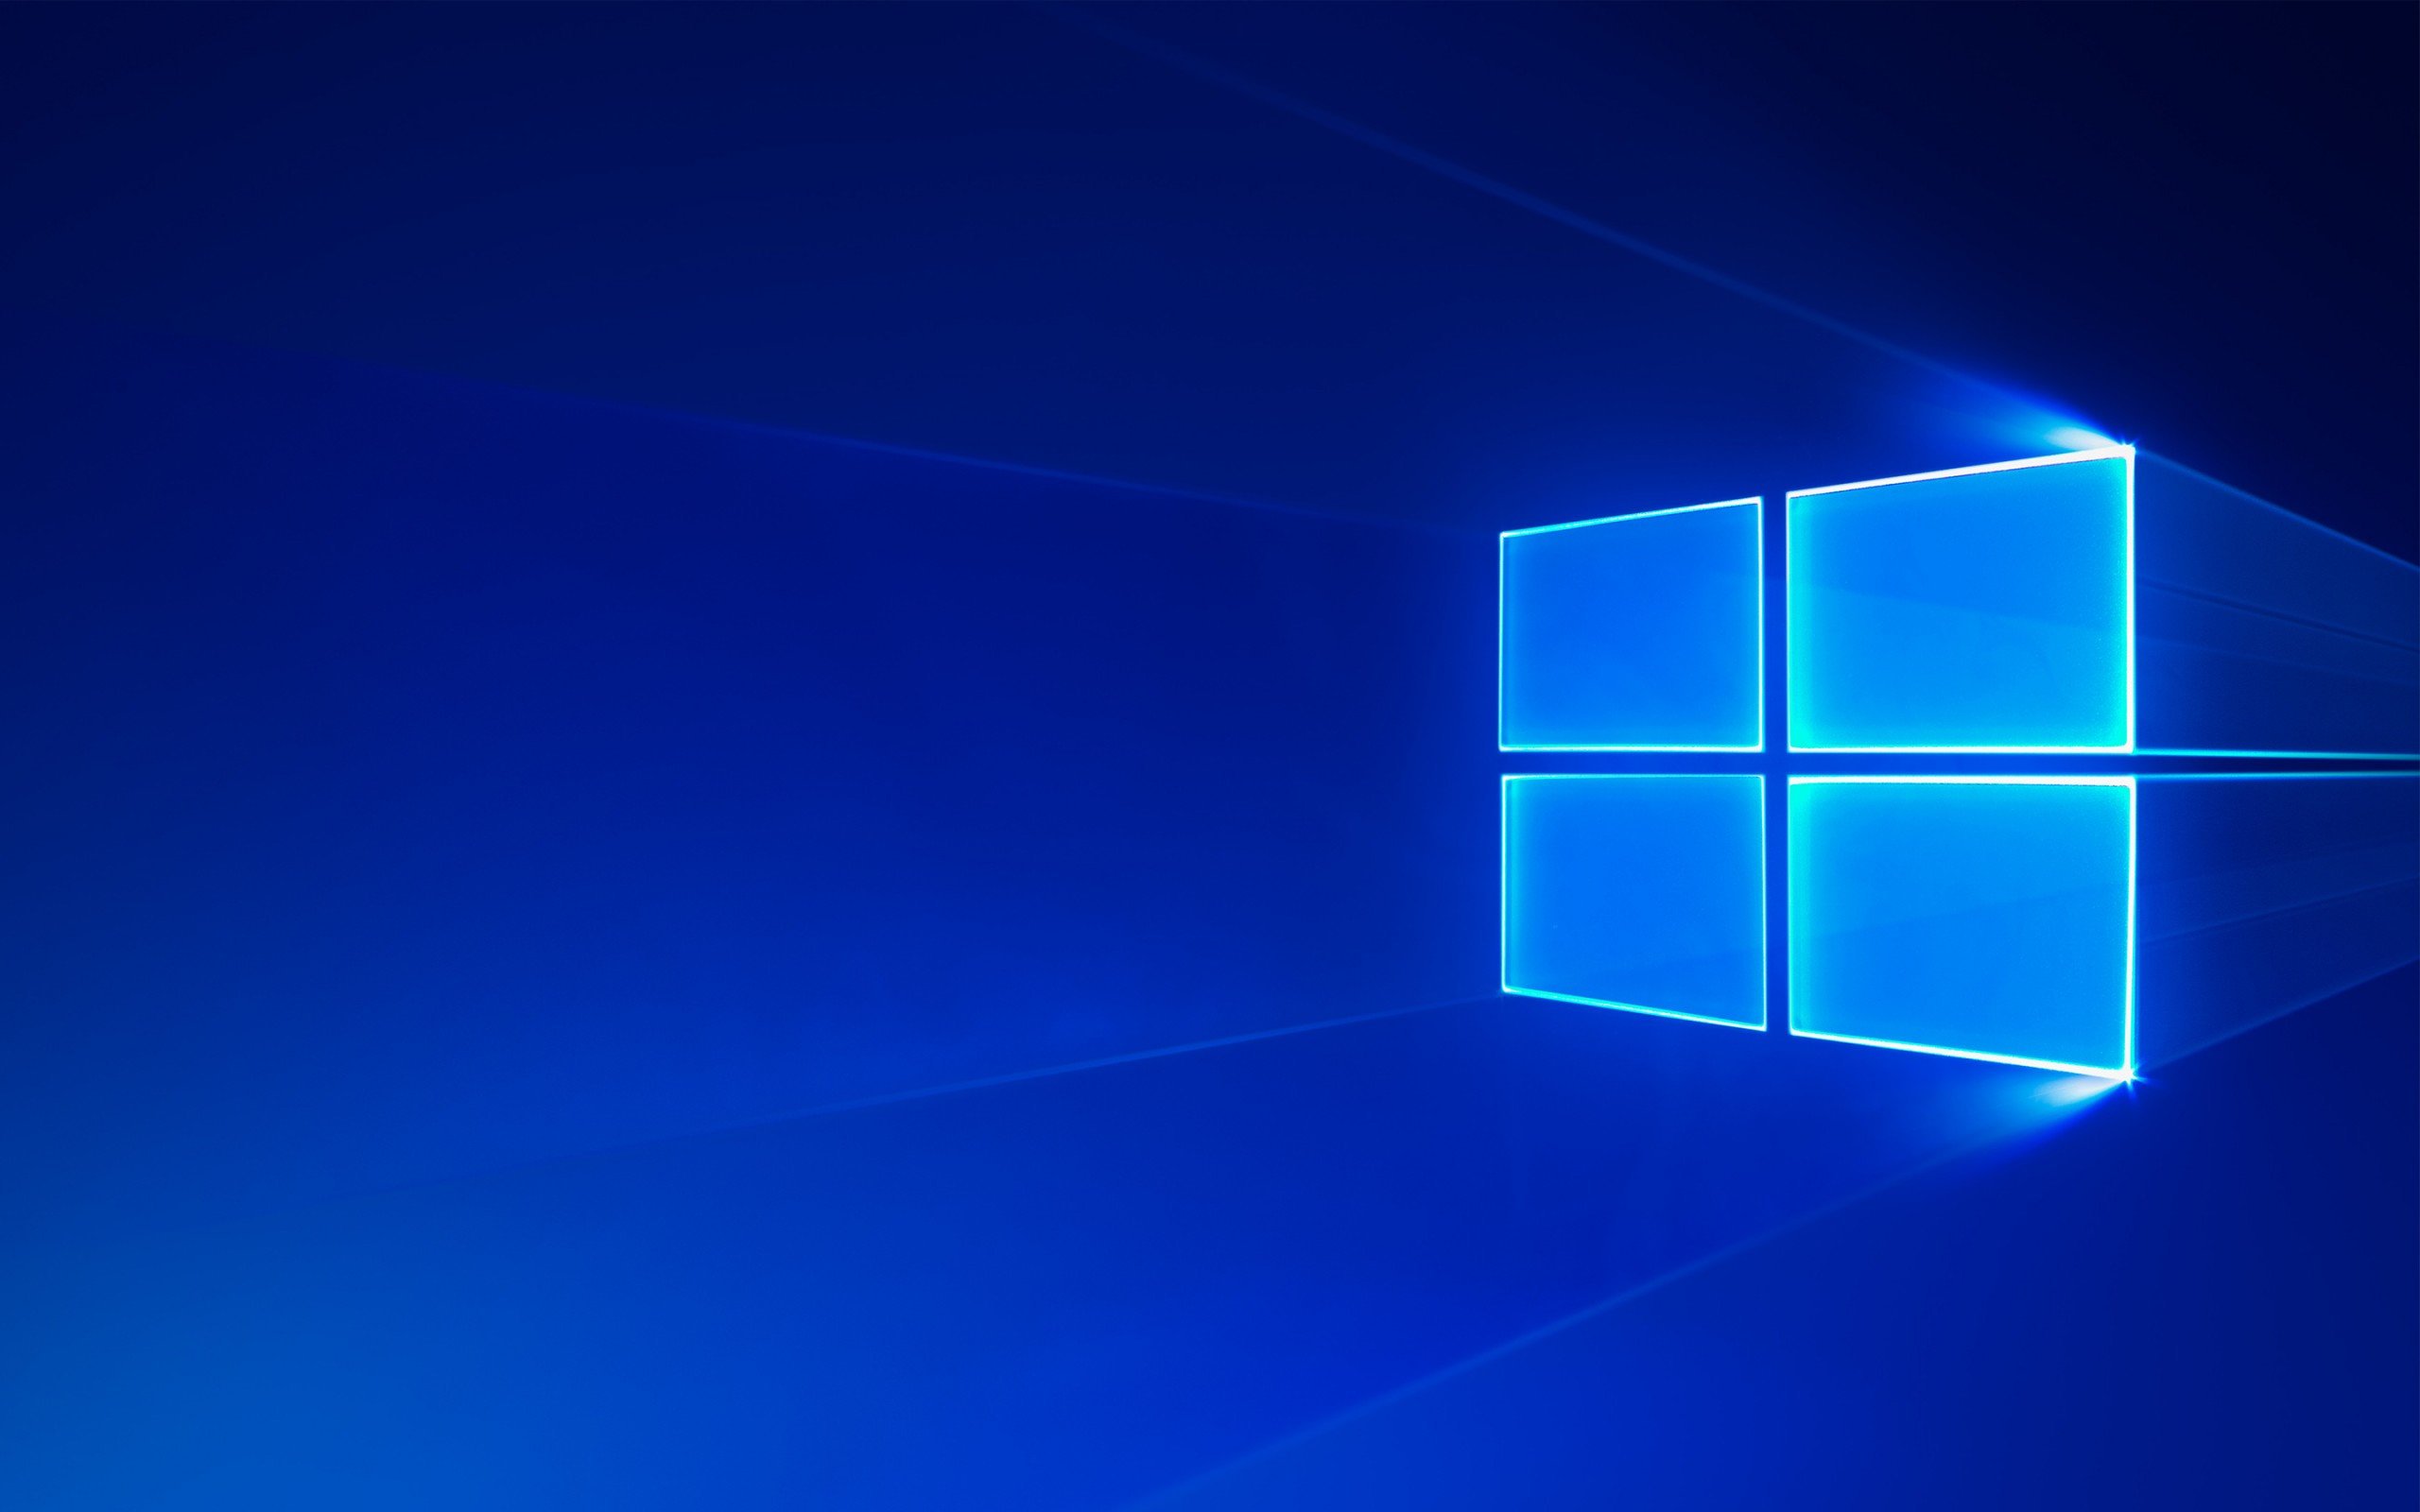 Free Download windows 10 stock Wallpaper for Desktop and Mobiles